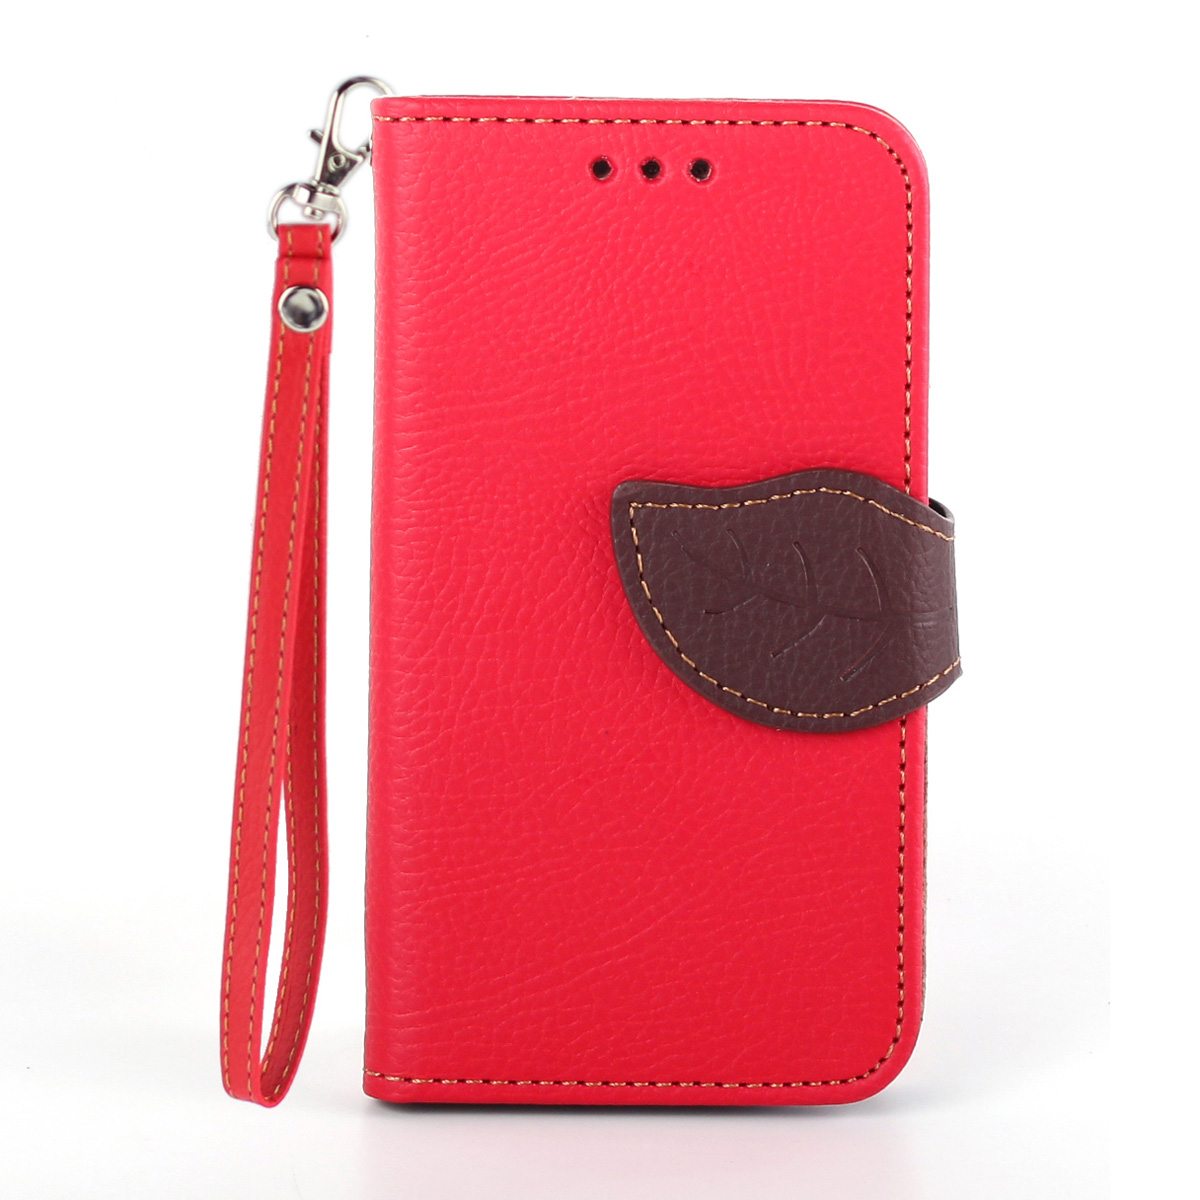 Case For Samsung Galaxy S3 Mini I8190 Cover Soft Silicone & Flip Leather Case For Samsung S3 Mini Fundas Card Slot Phone Shell